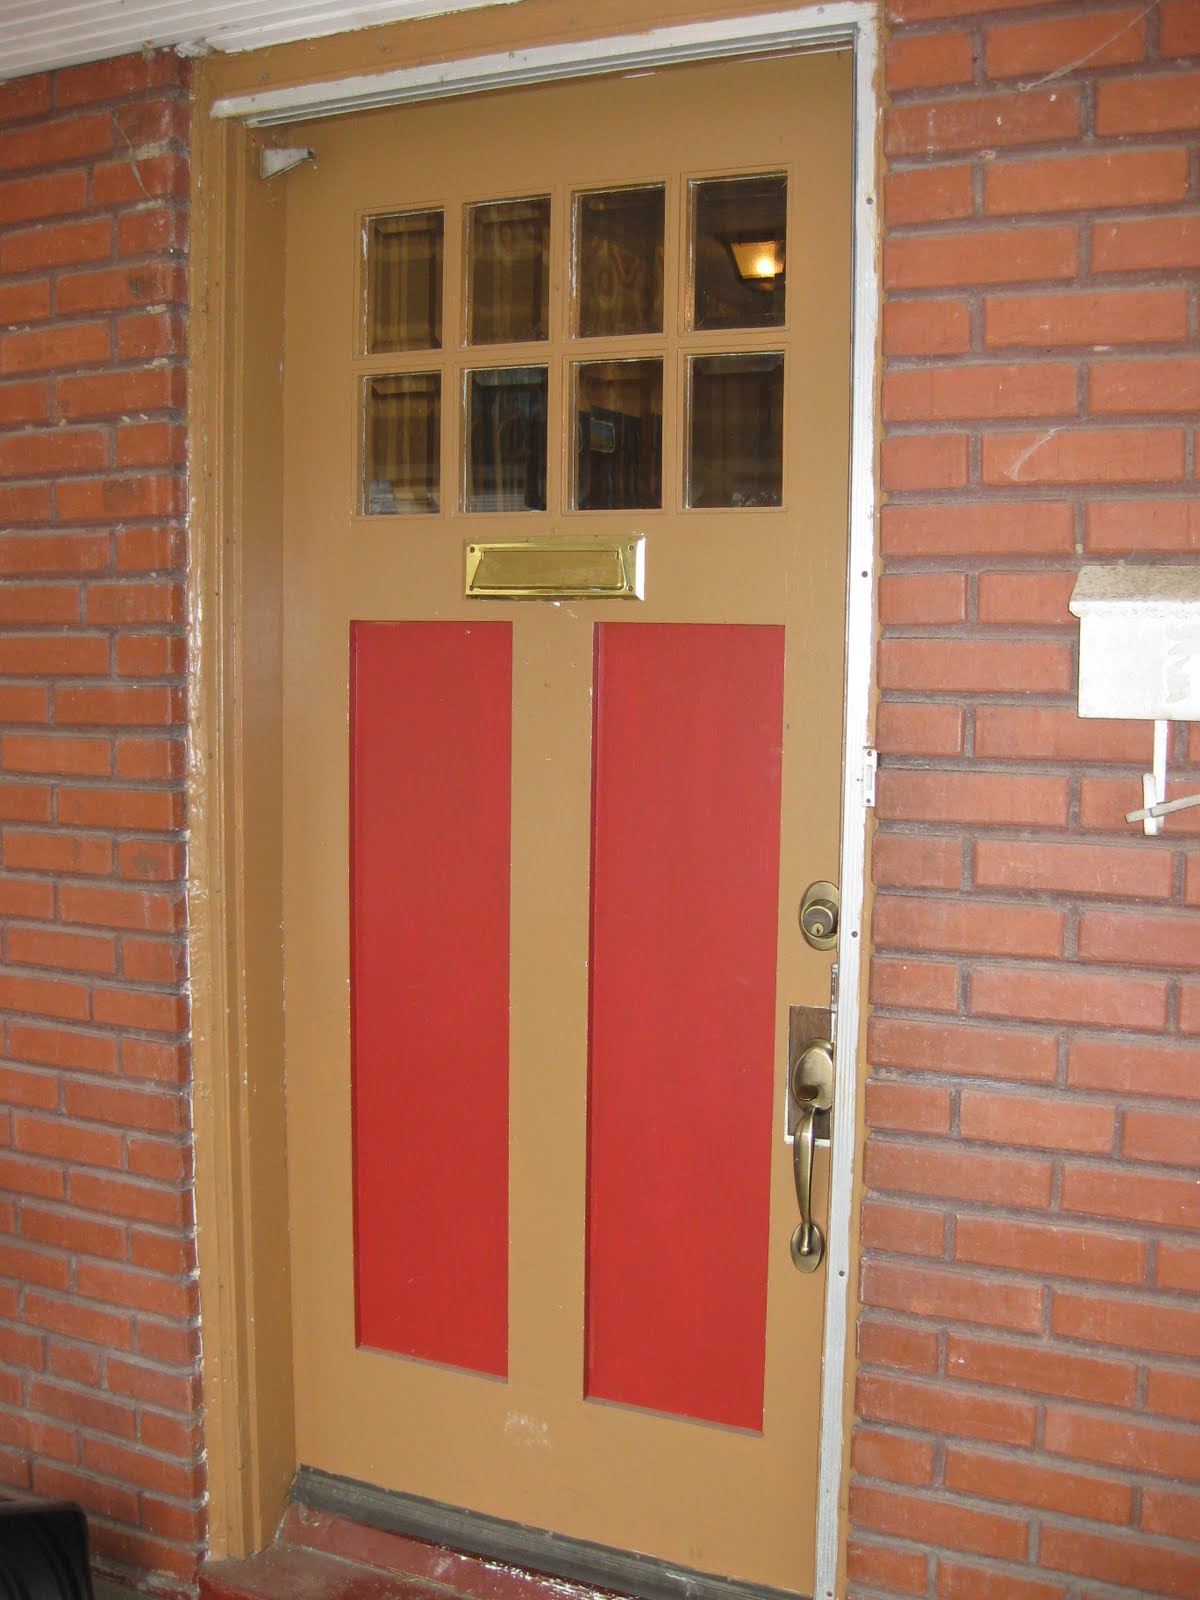 As You Can See Above, The Baby Poop Brown Color And A Red Just Isnu0027t Doing  It For Me. Do You Notice The Brown Rectangle Behind The Door Handle?